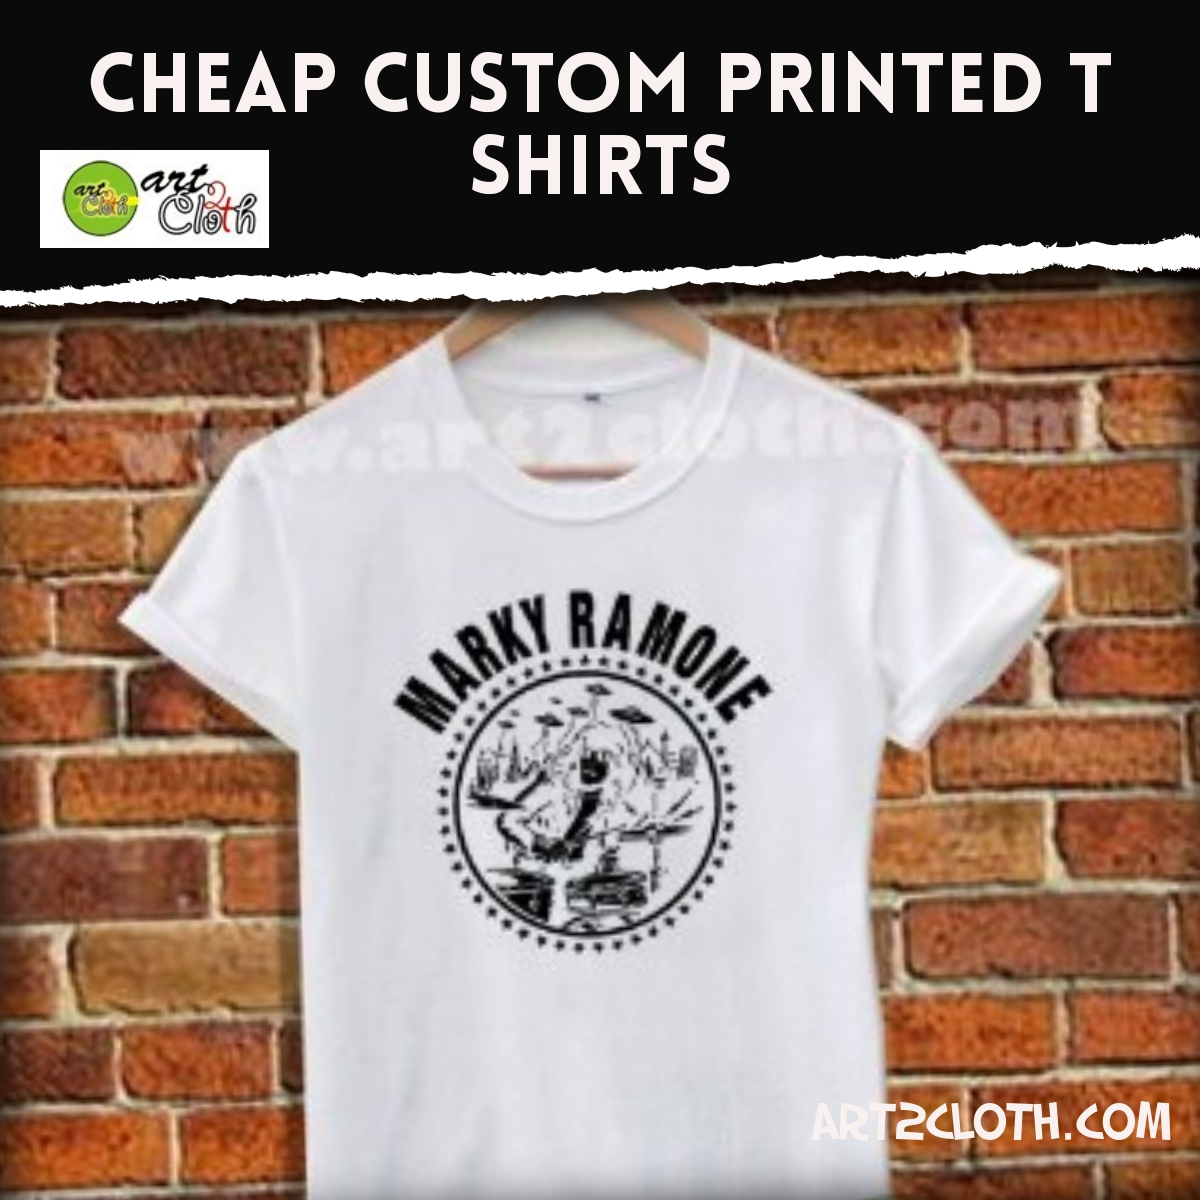 778dc1fd8 ART4GALLERY – Page 2 – Art Galery for t shirt designs,sweatshirts ...